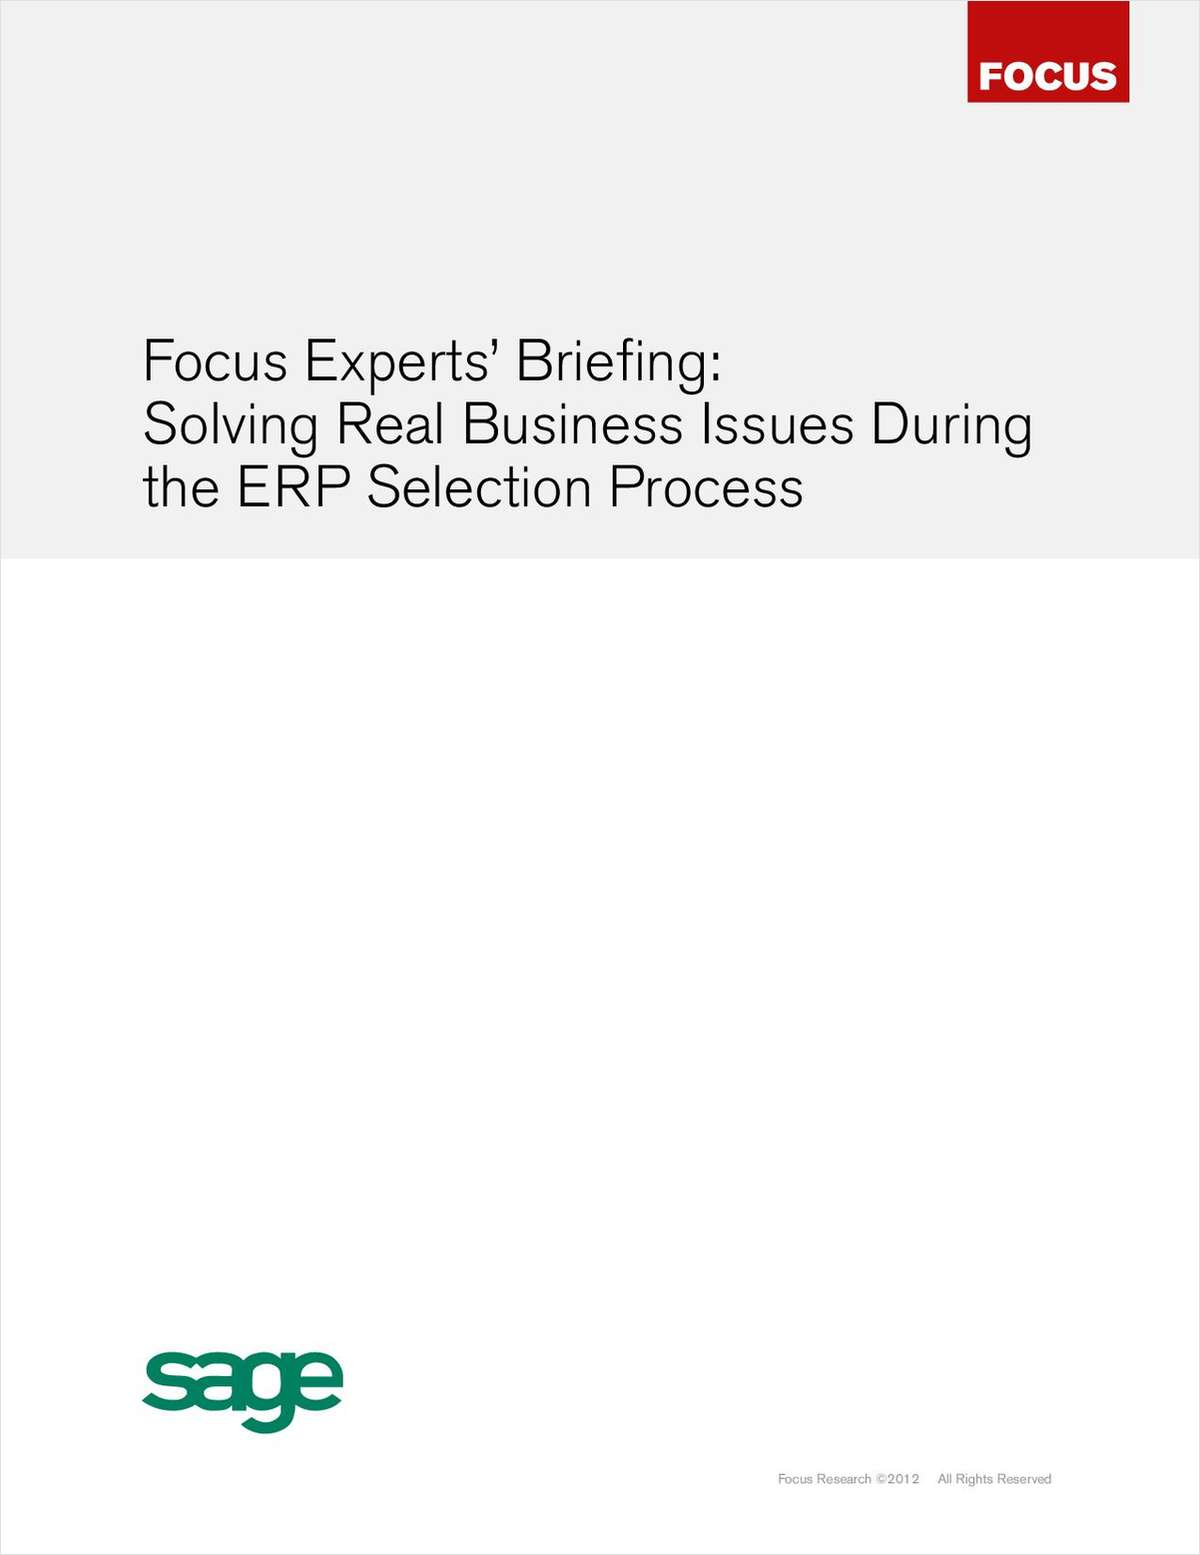 Solving Real Business Issues During the ERP Selection Process